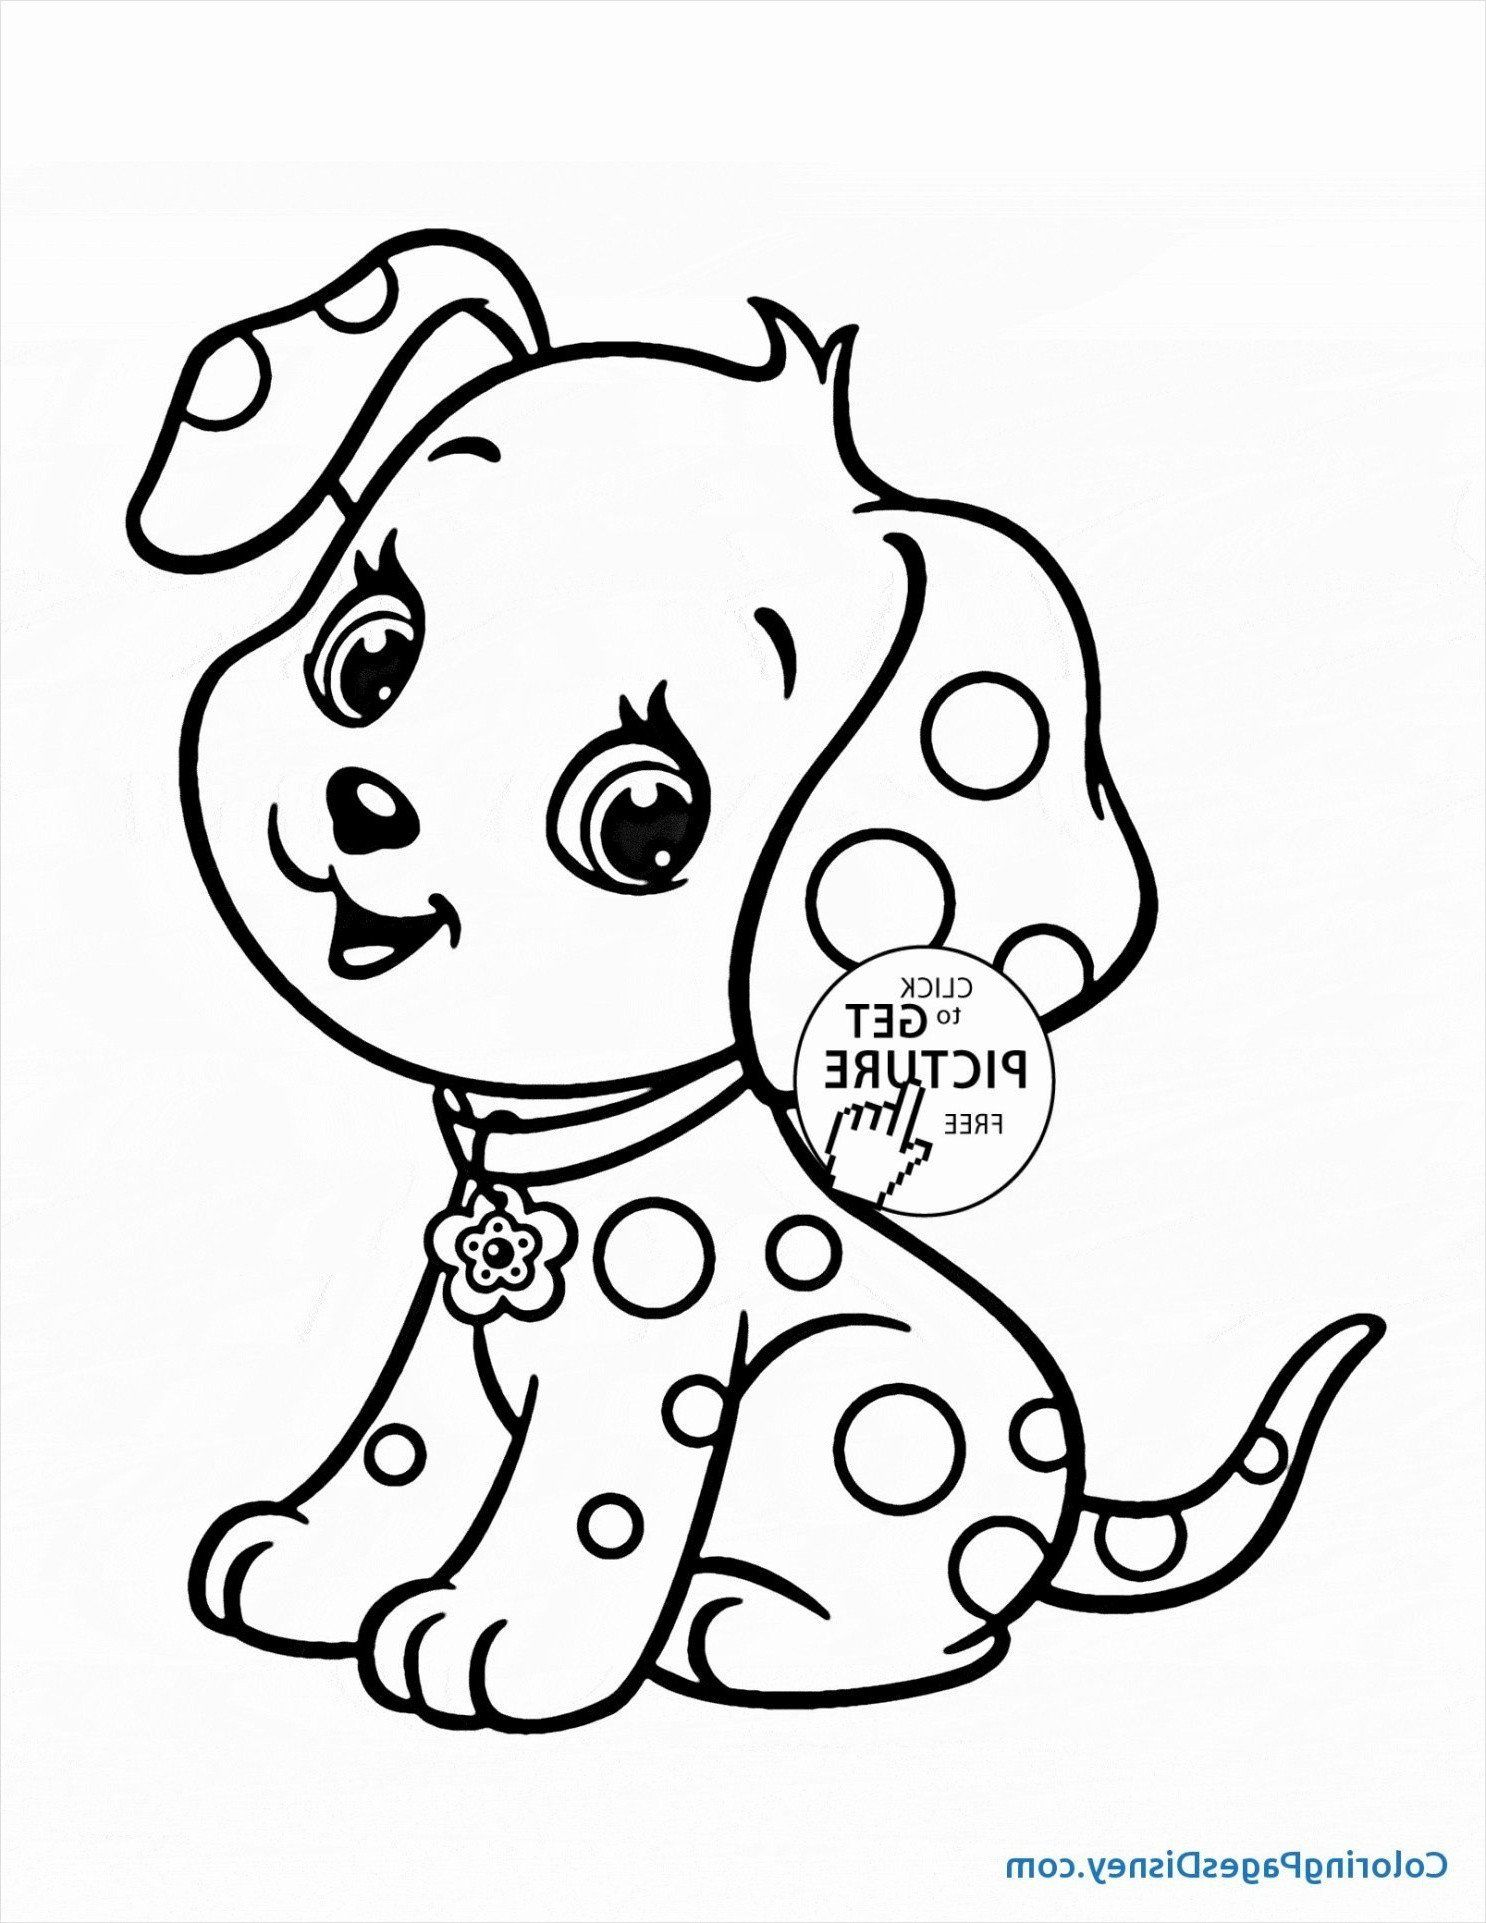 Coloring Pages To Print Out Coloring Pages Coloring To Print Out Coloring Puppy Coloring Pages Unicorn Coloring Pages Coloring Pictures For Kids